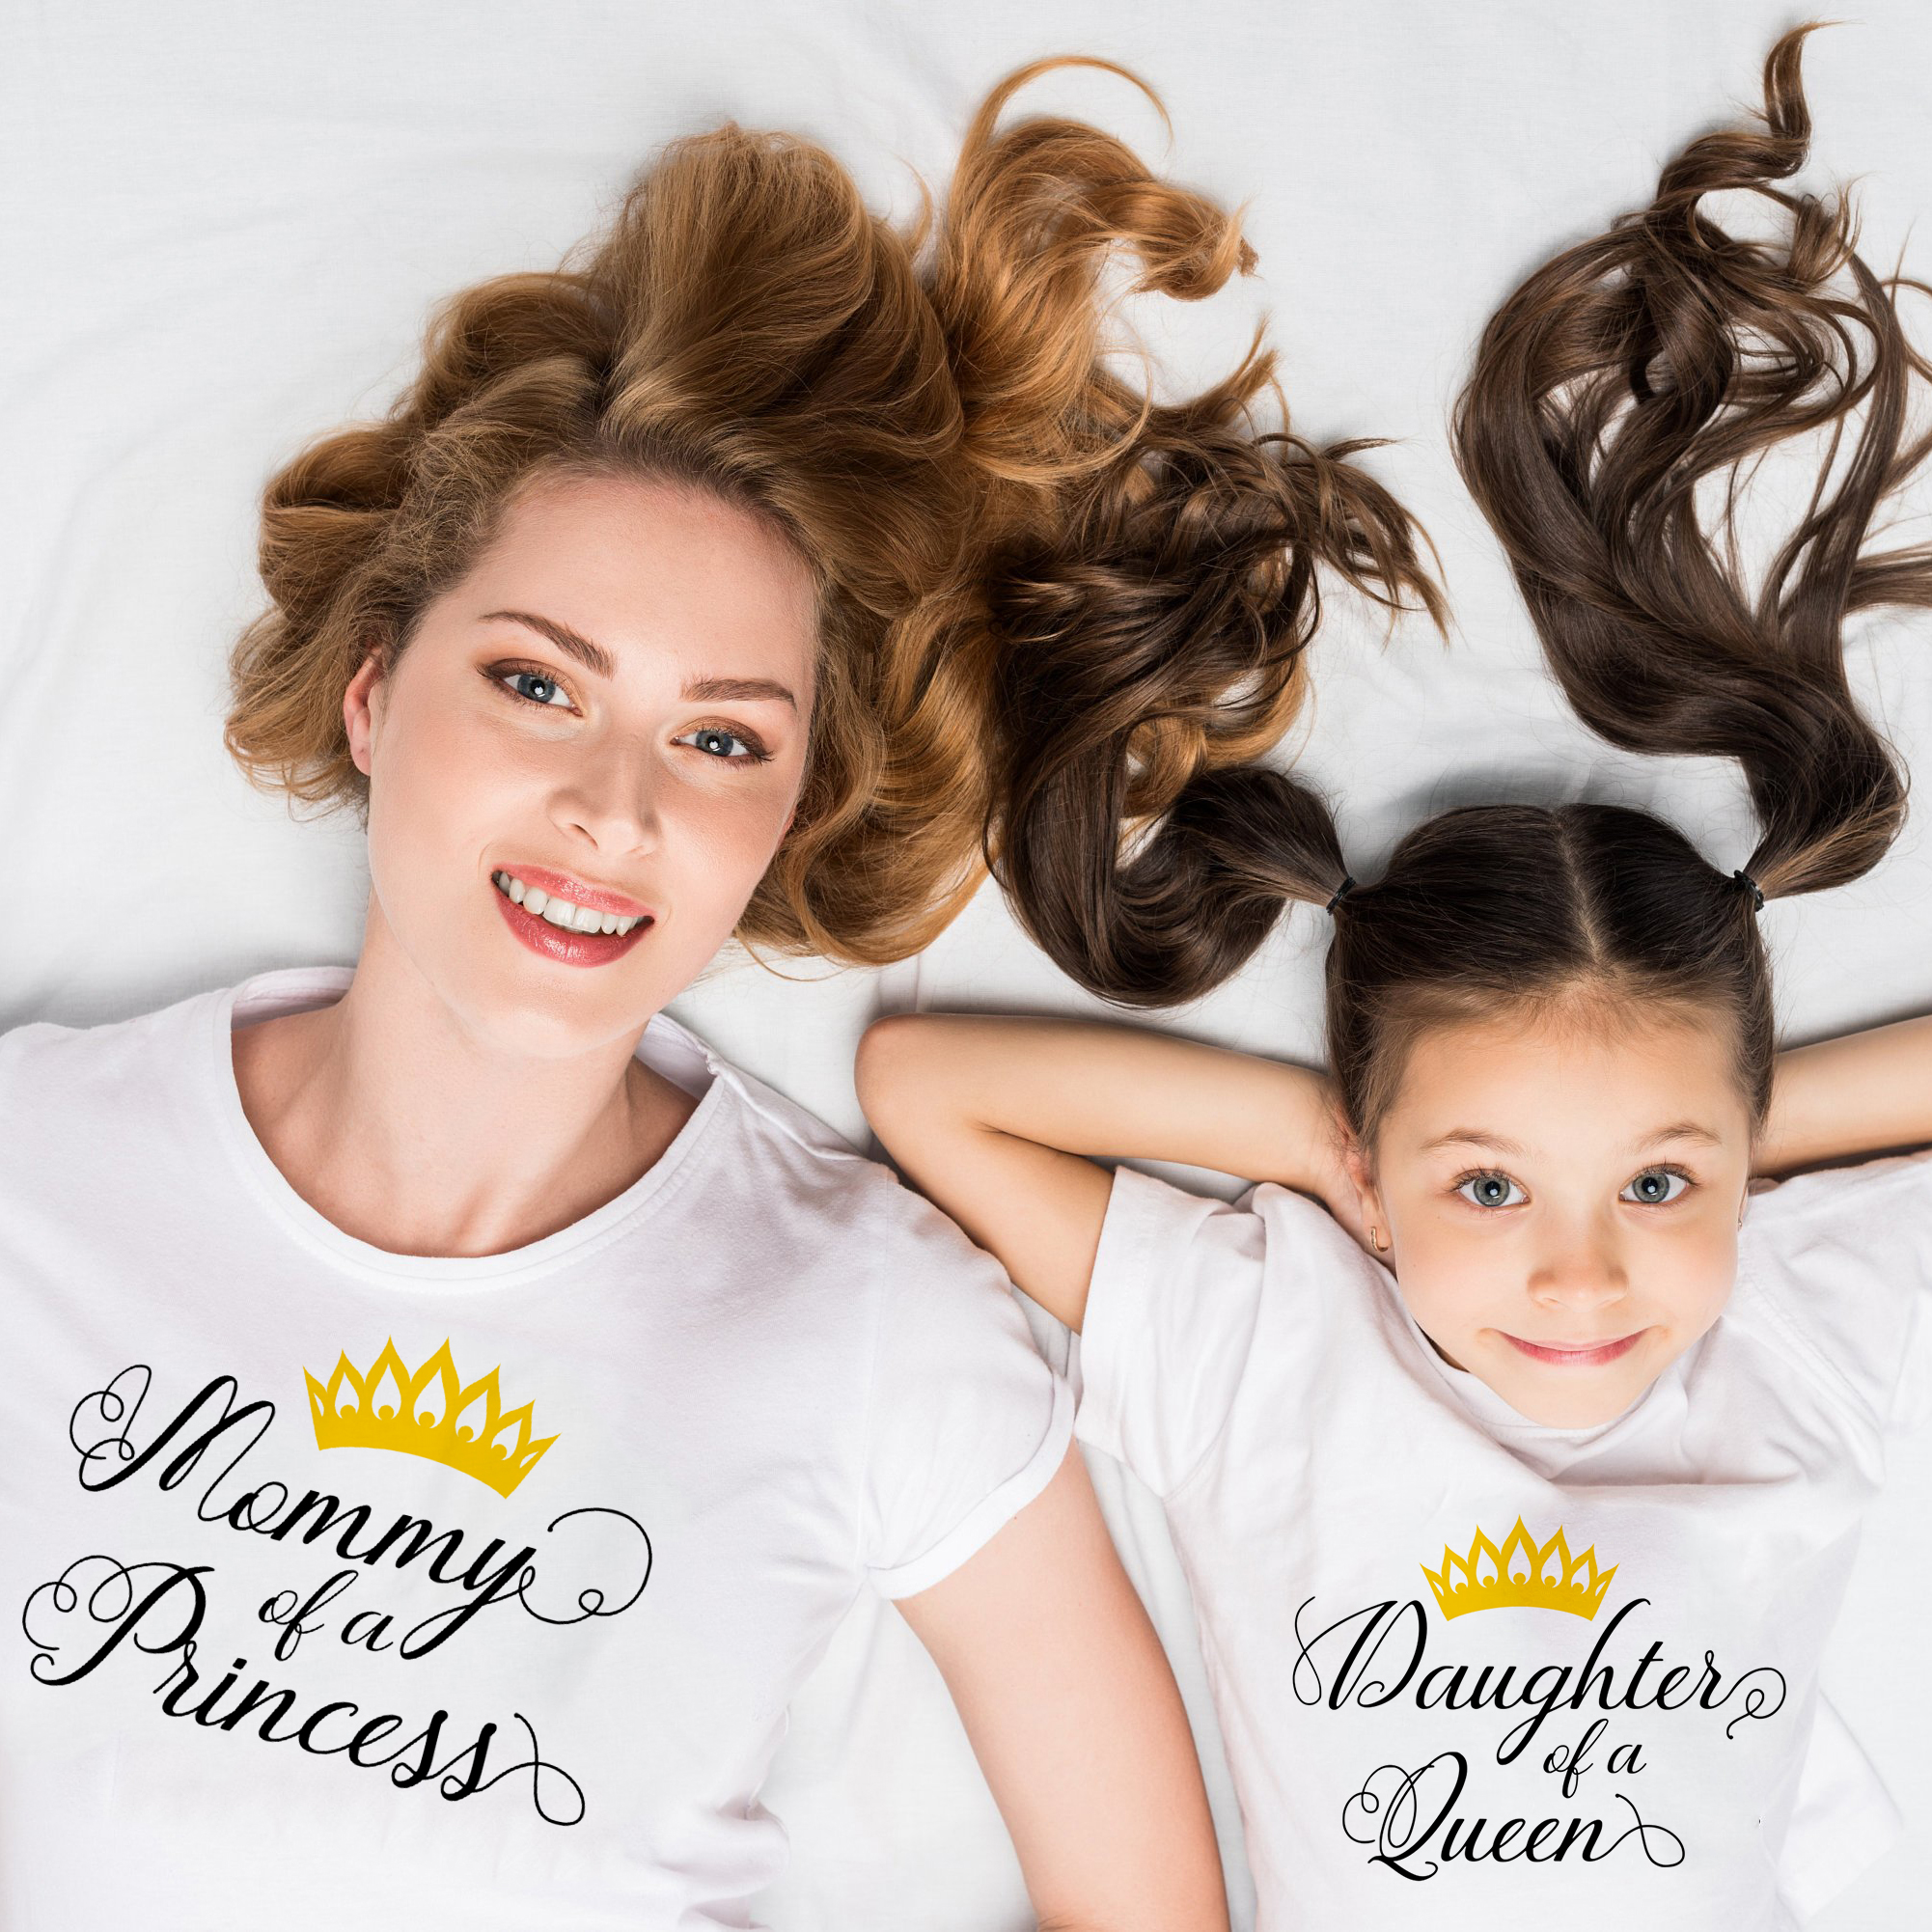 1pcs Mother Of A Princess Daughter Of A Queen Mommy & Me T-Shirts Mom And Daughter Or Son T Shirt Family Matching Shirt